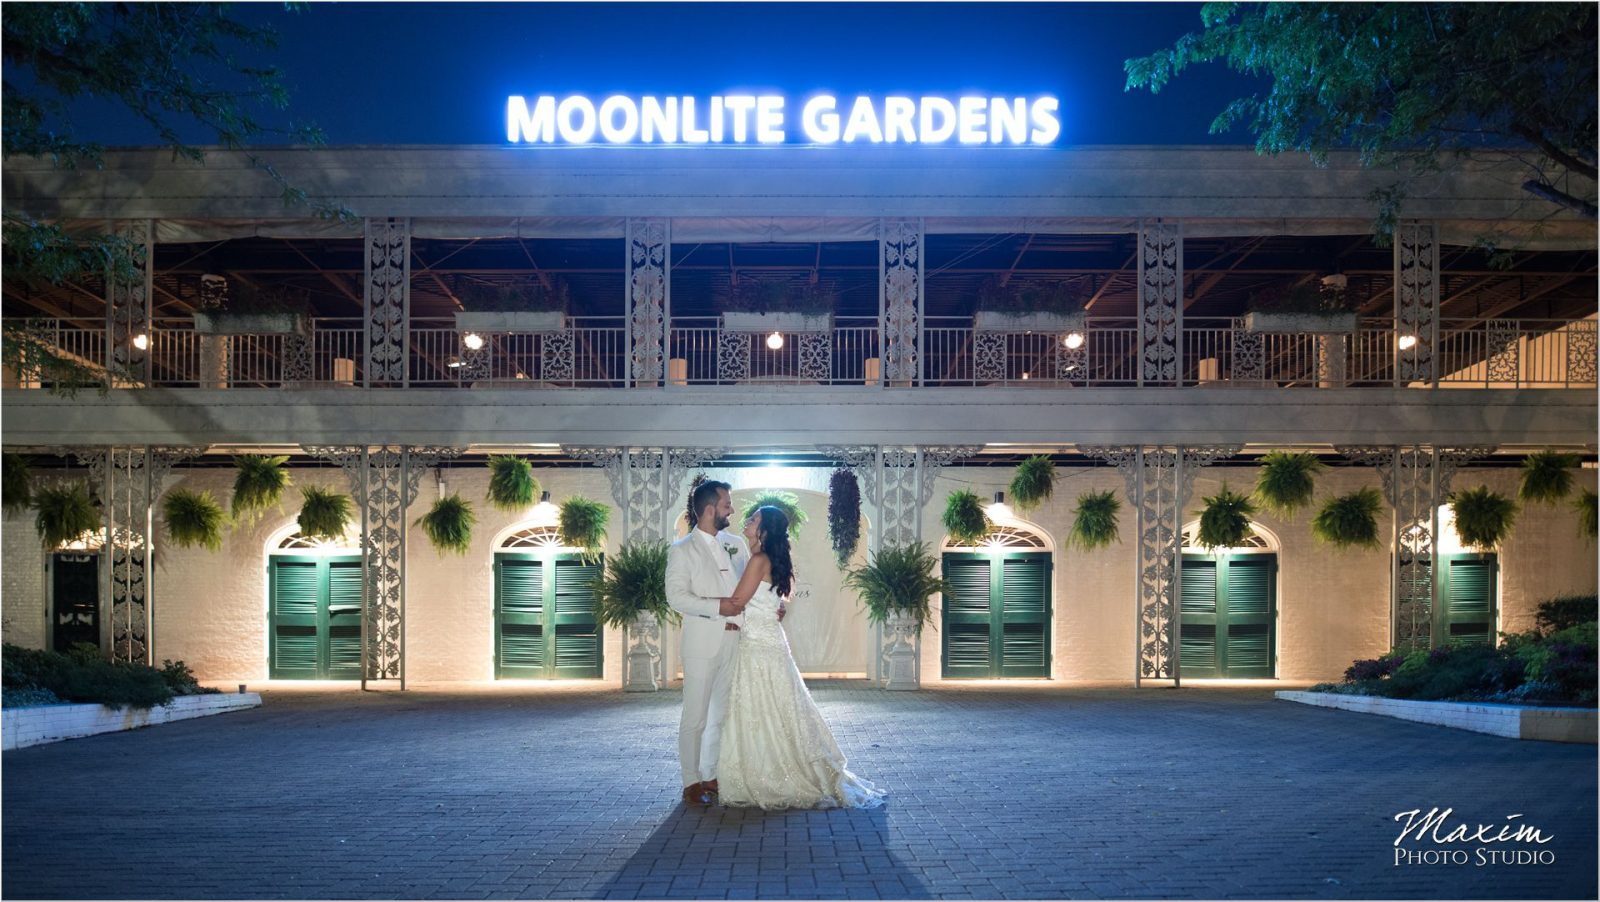 Moonlight Gardens Coney Island night wedding